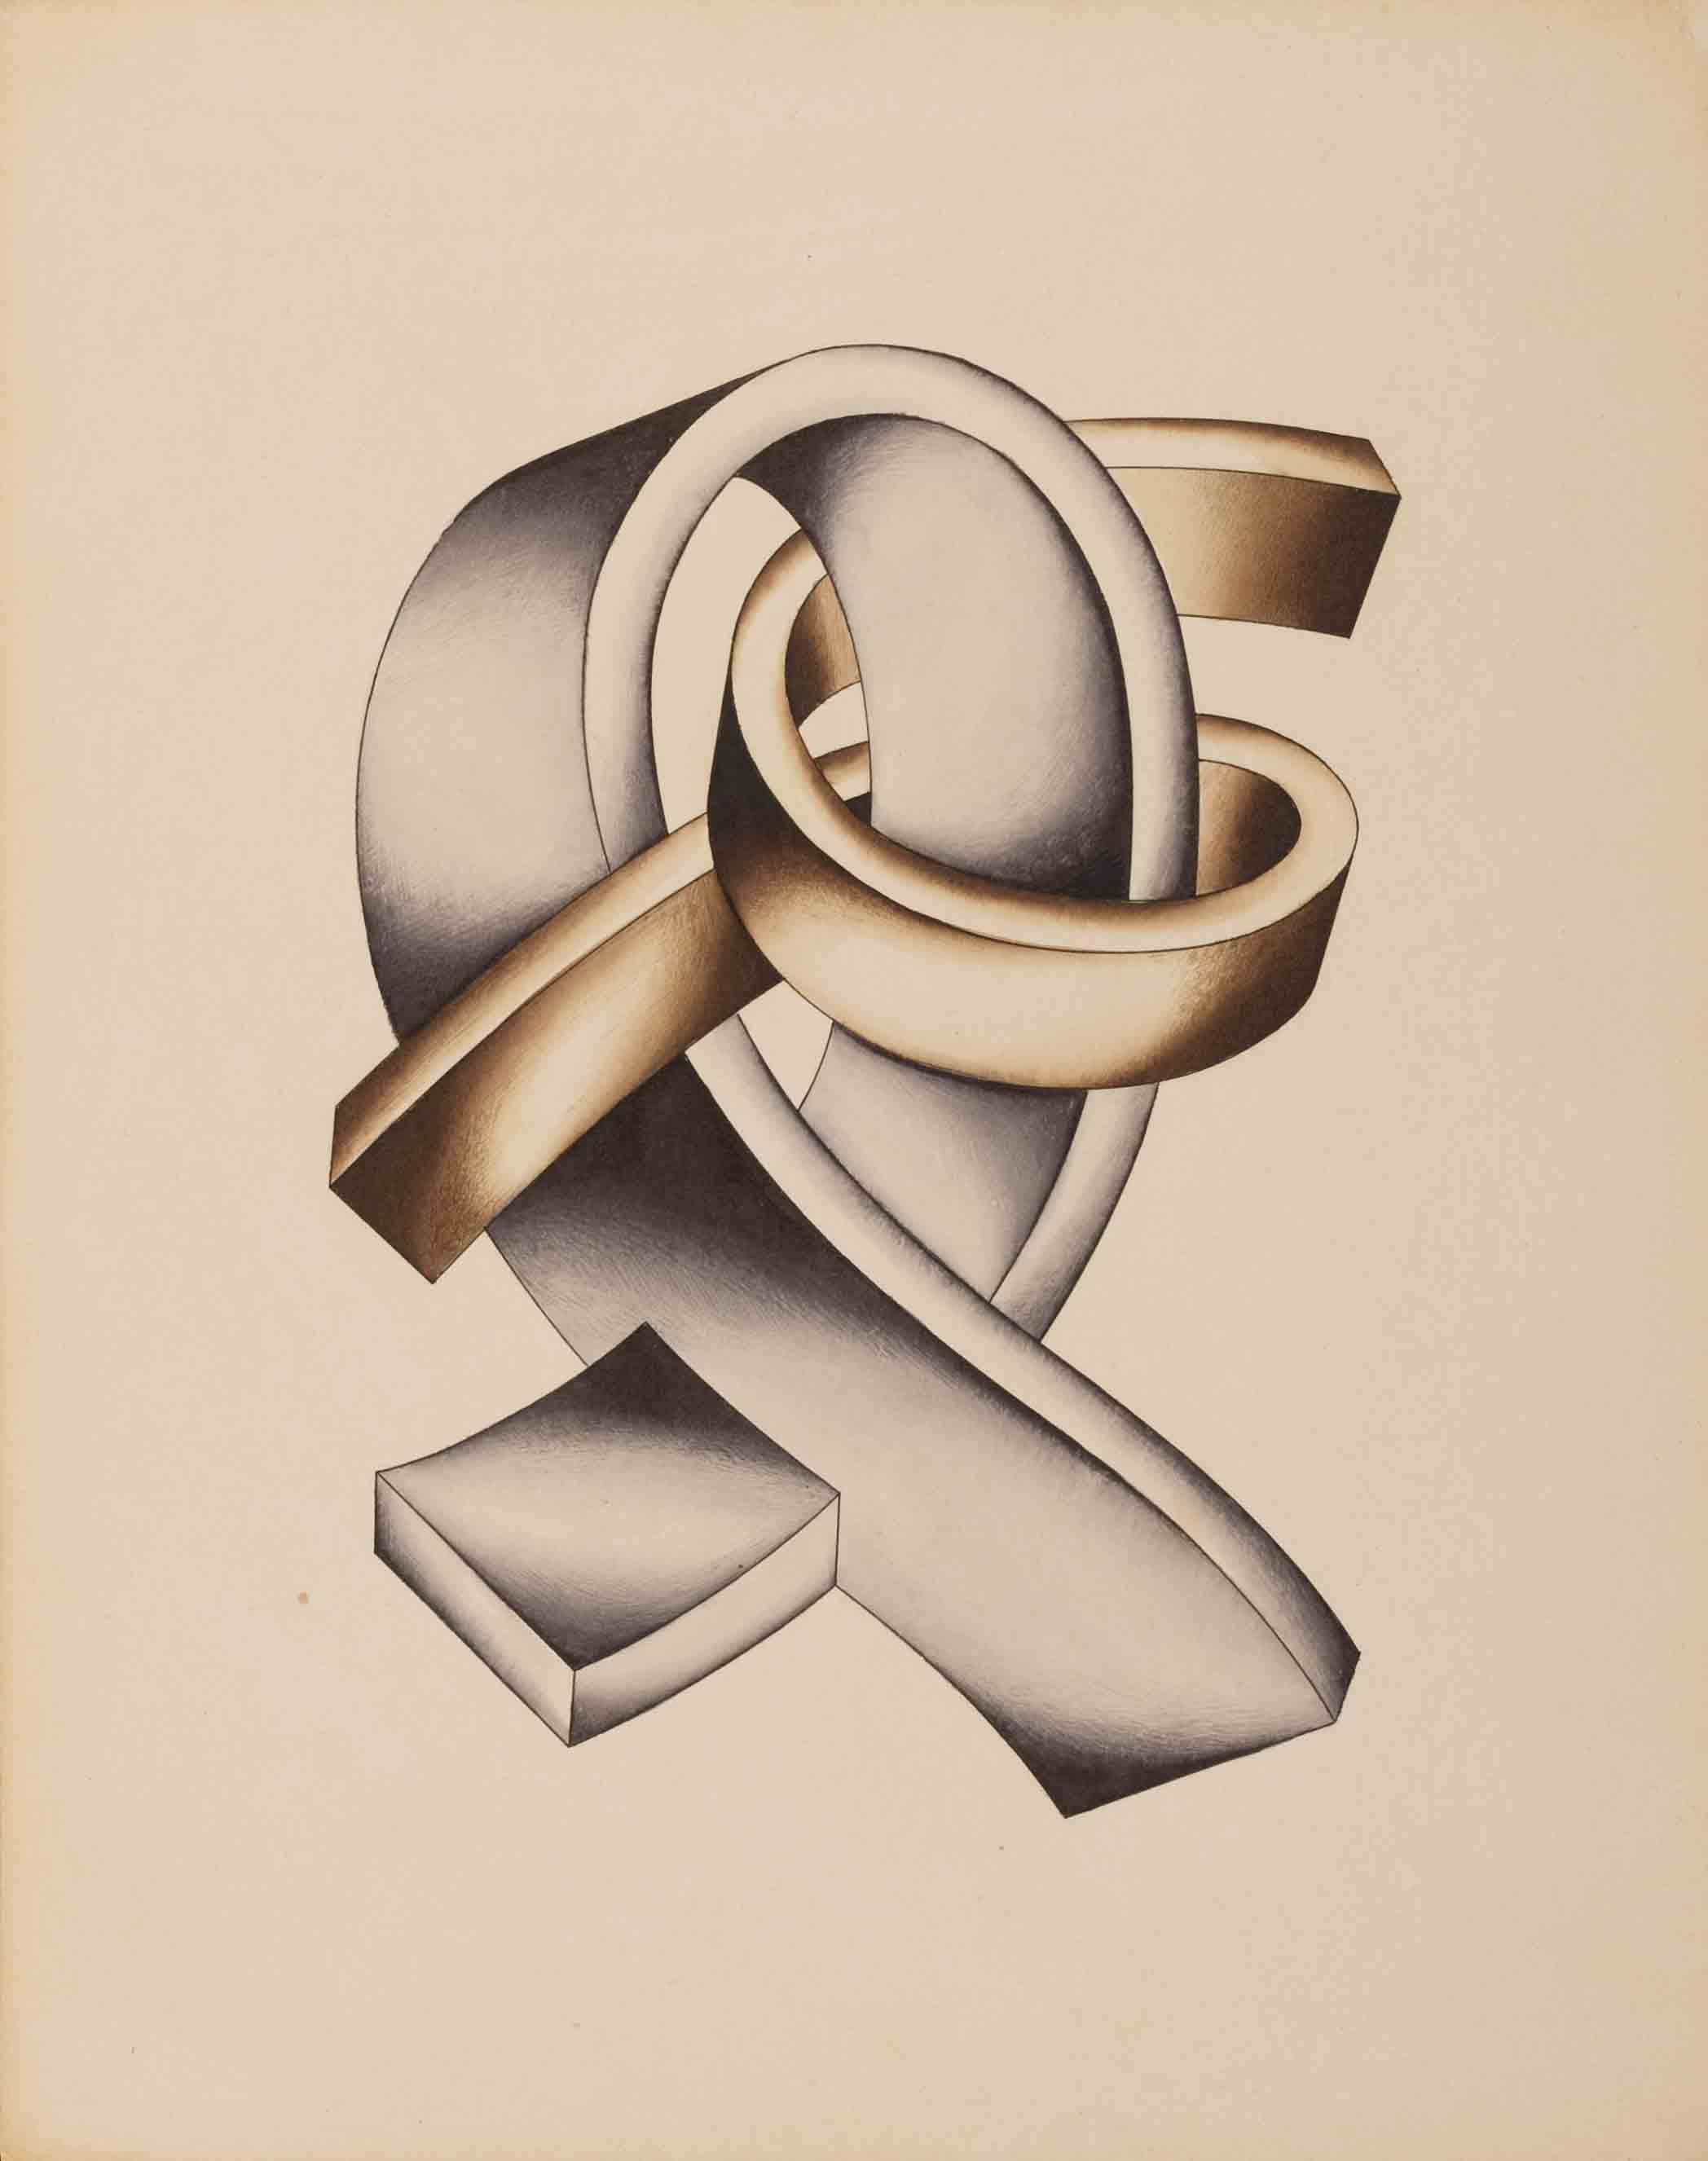 Complicated Bending Forms (Strength and Movement), mid 1920s - Yakov Chernikhov